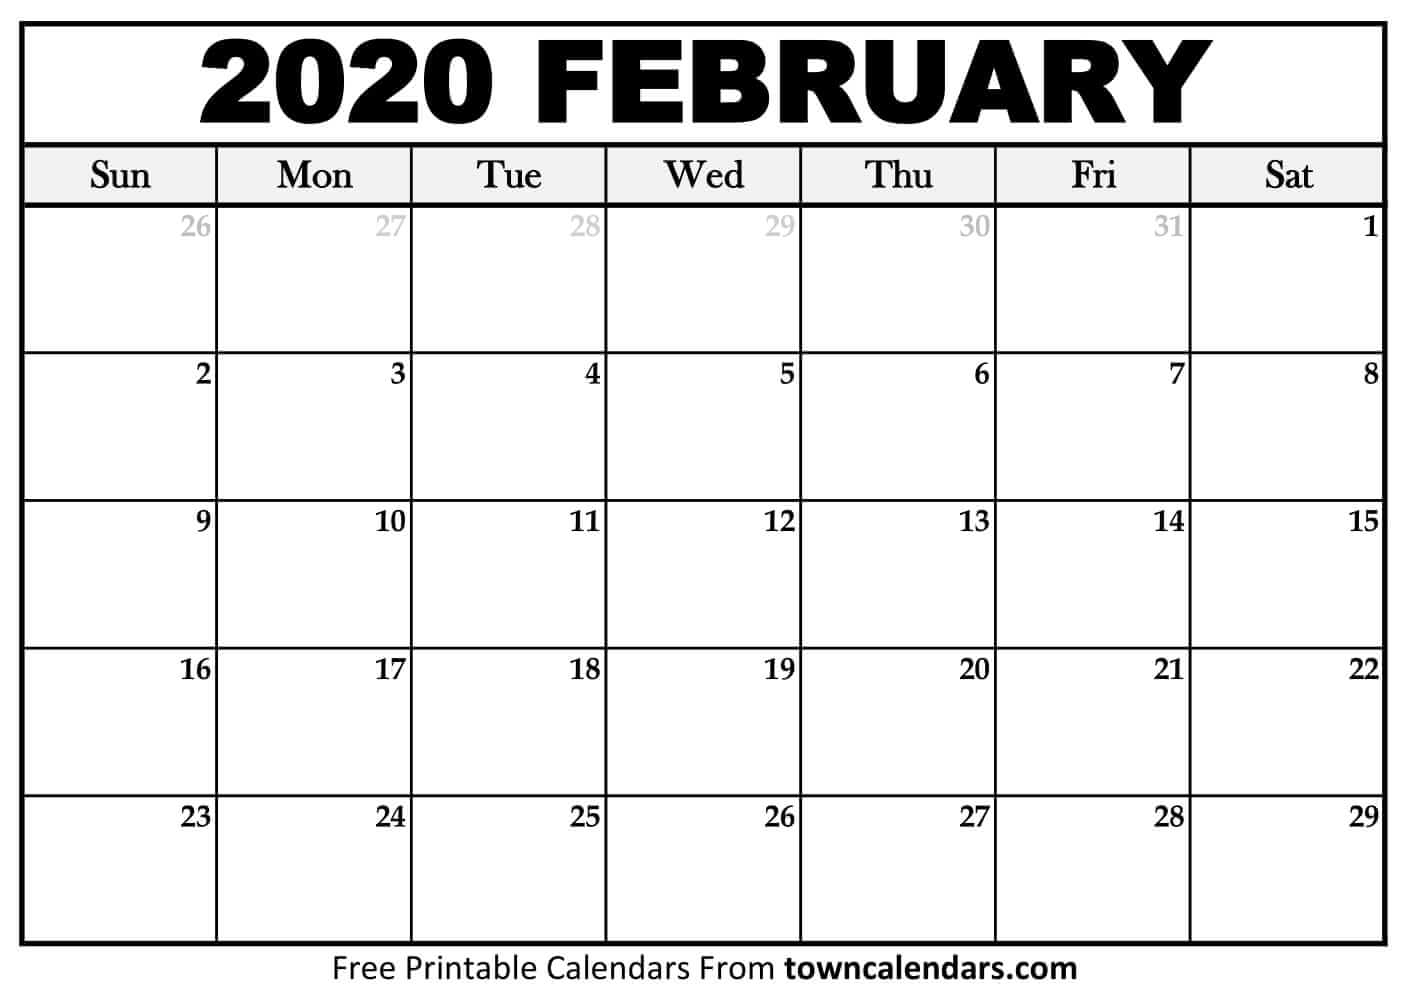 2020 Queensland State School Calendar | Calendar Template